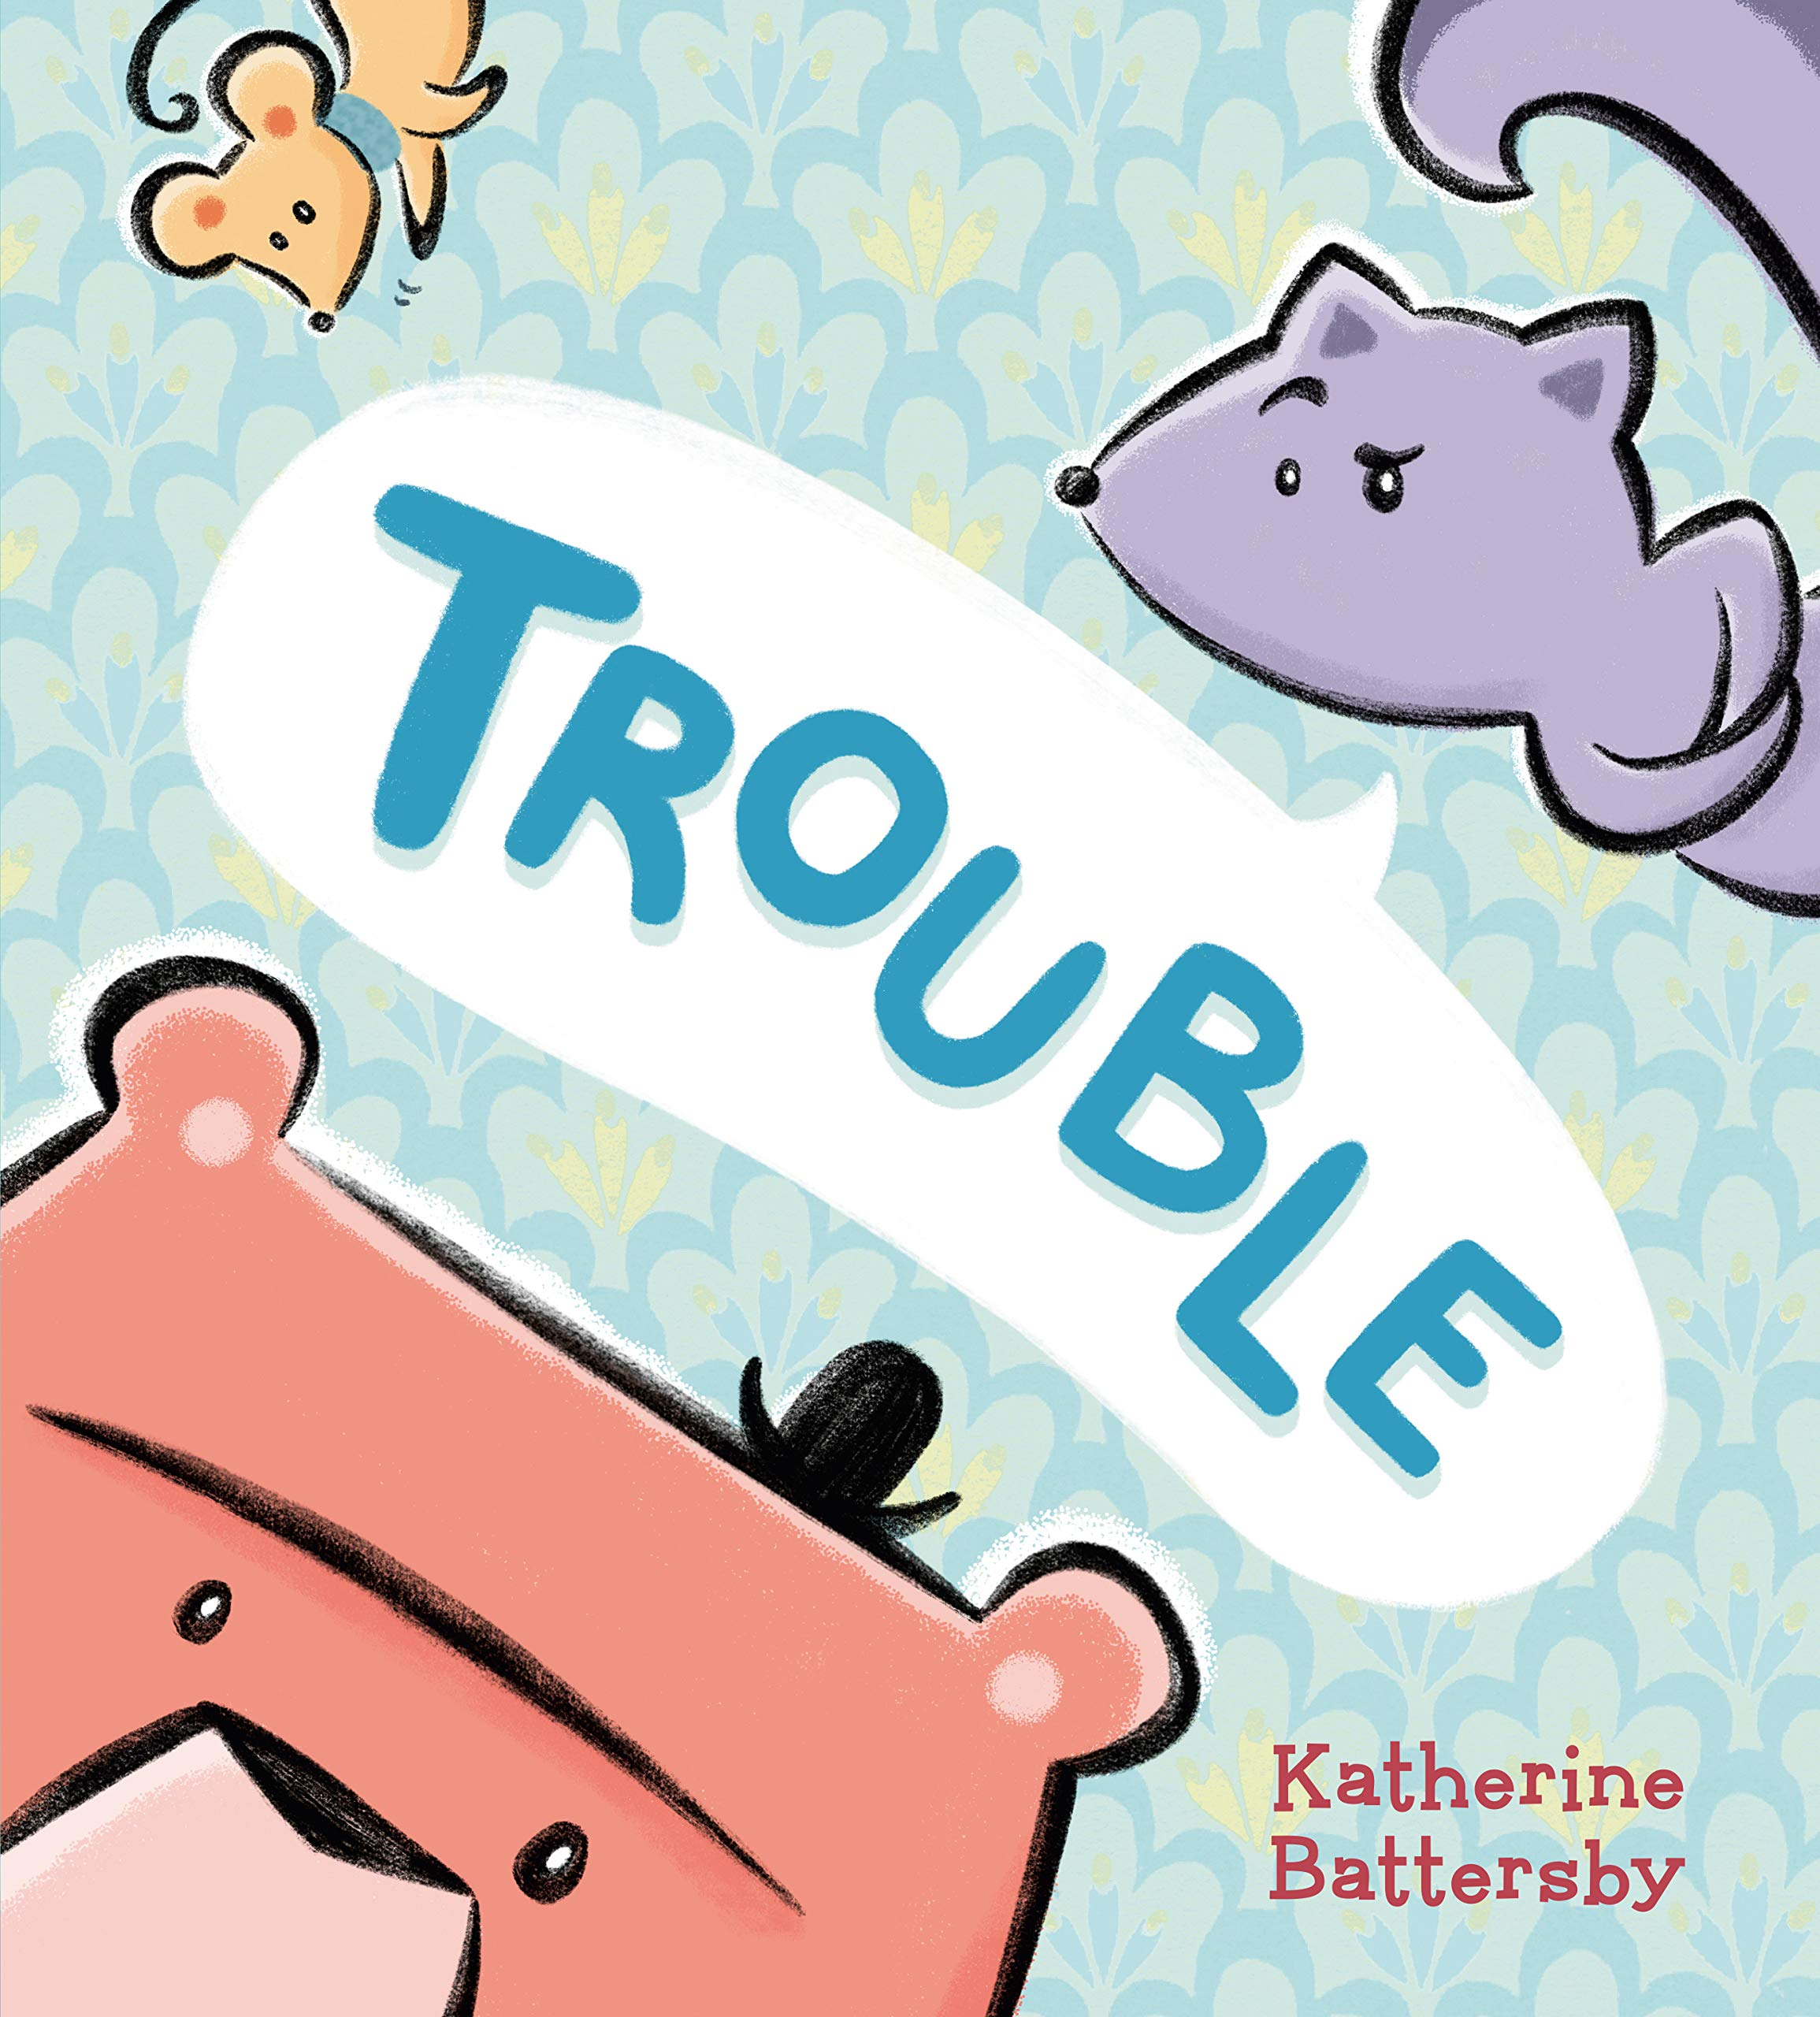 Trouble: Battersby, Katherine: 9780593114049: Amazon.com: Books